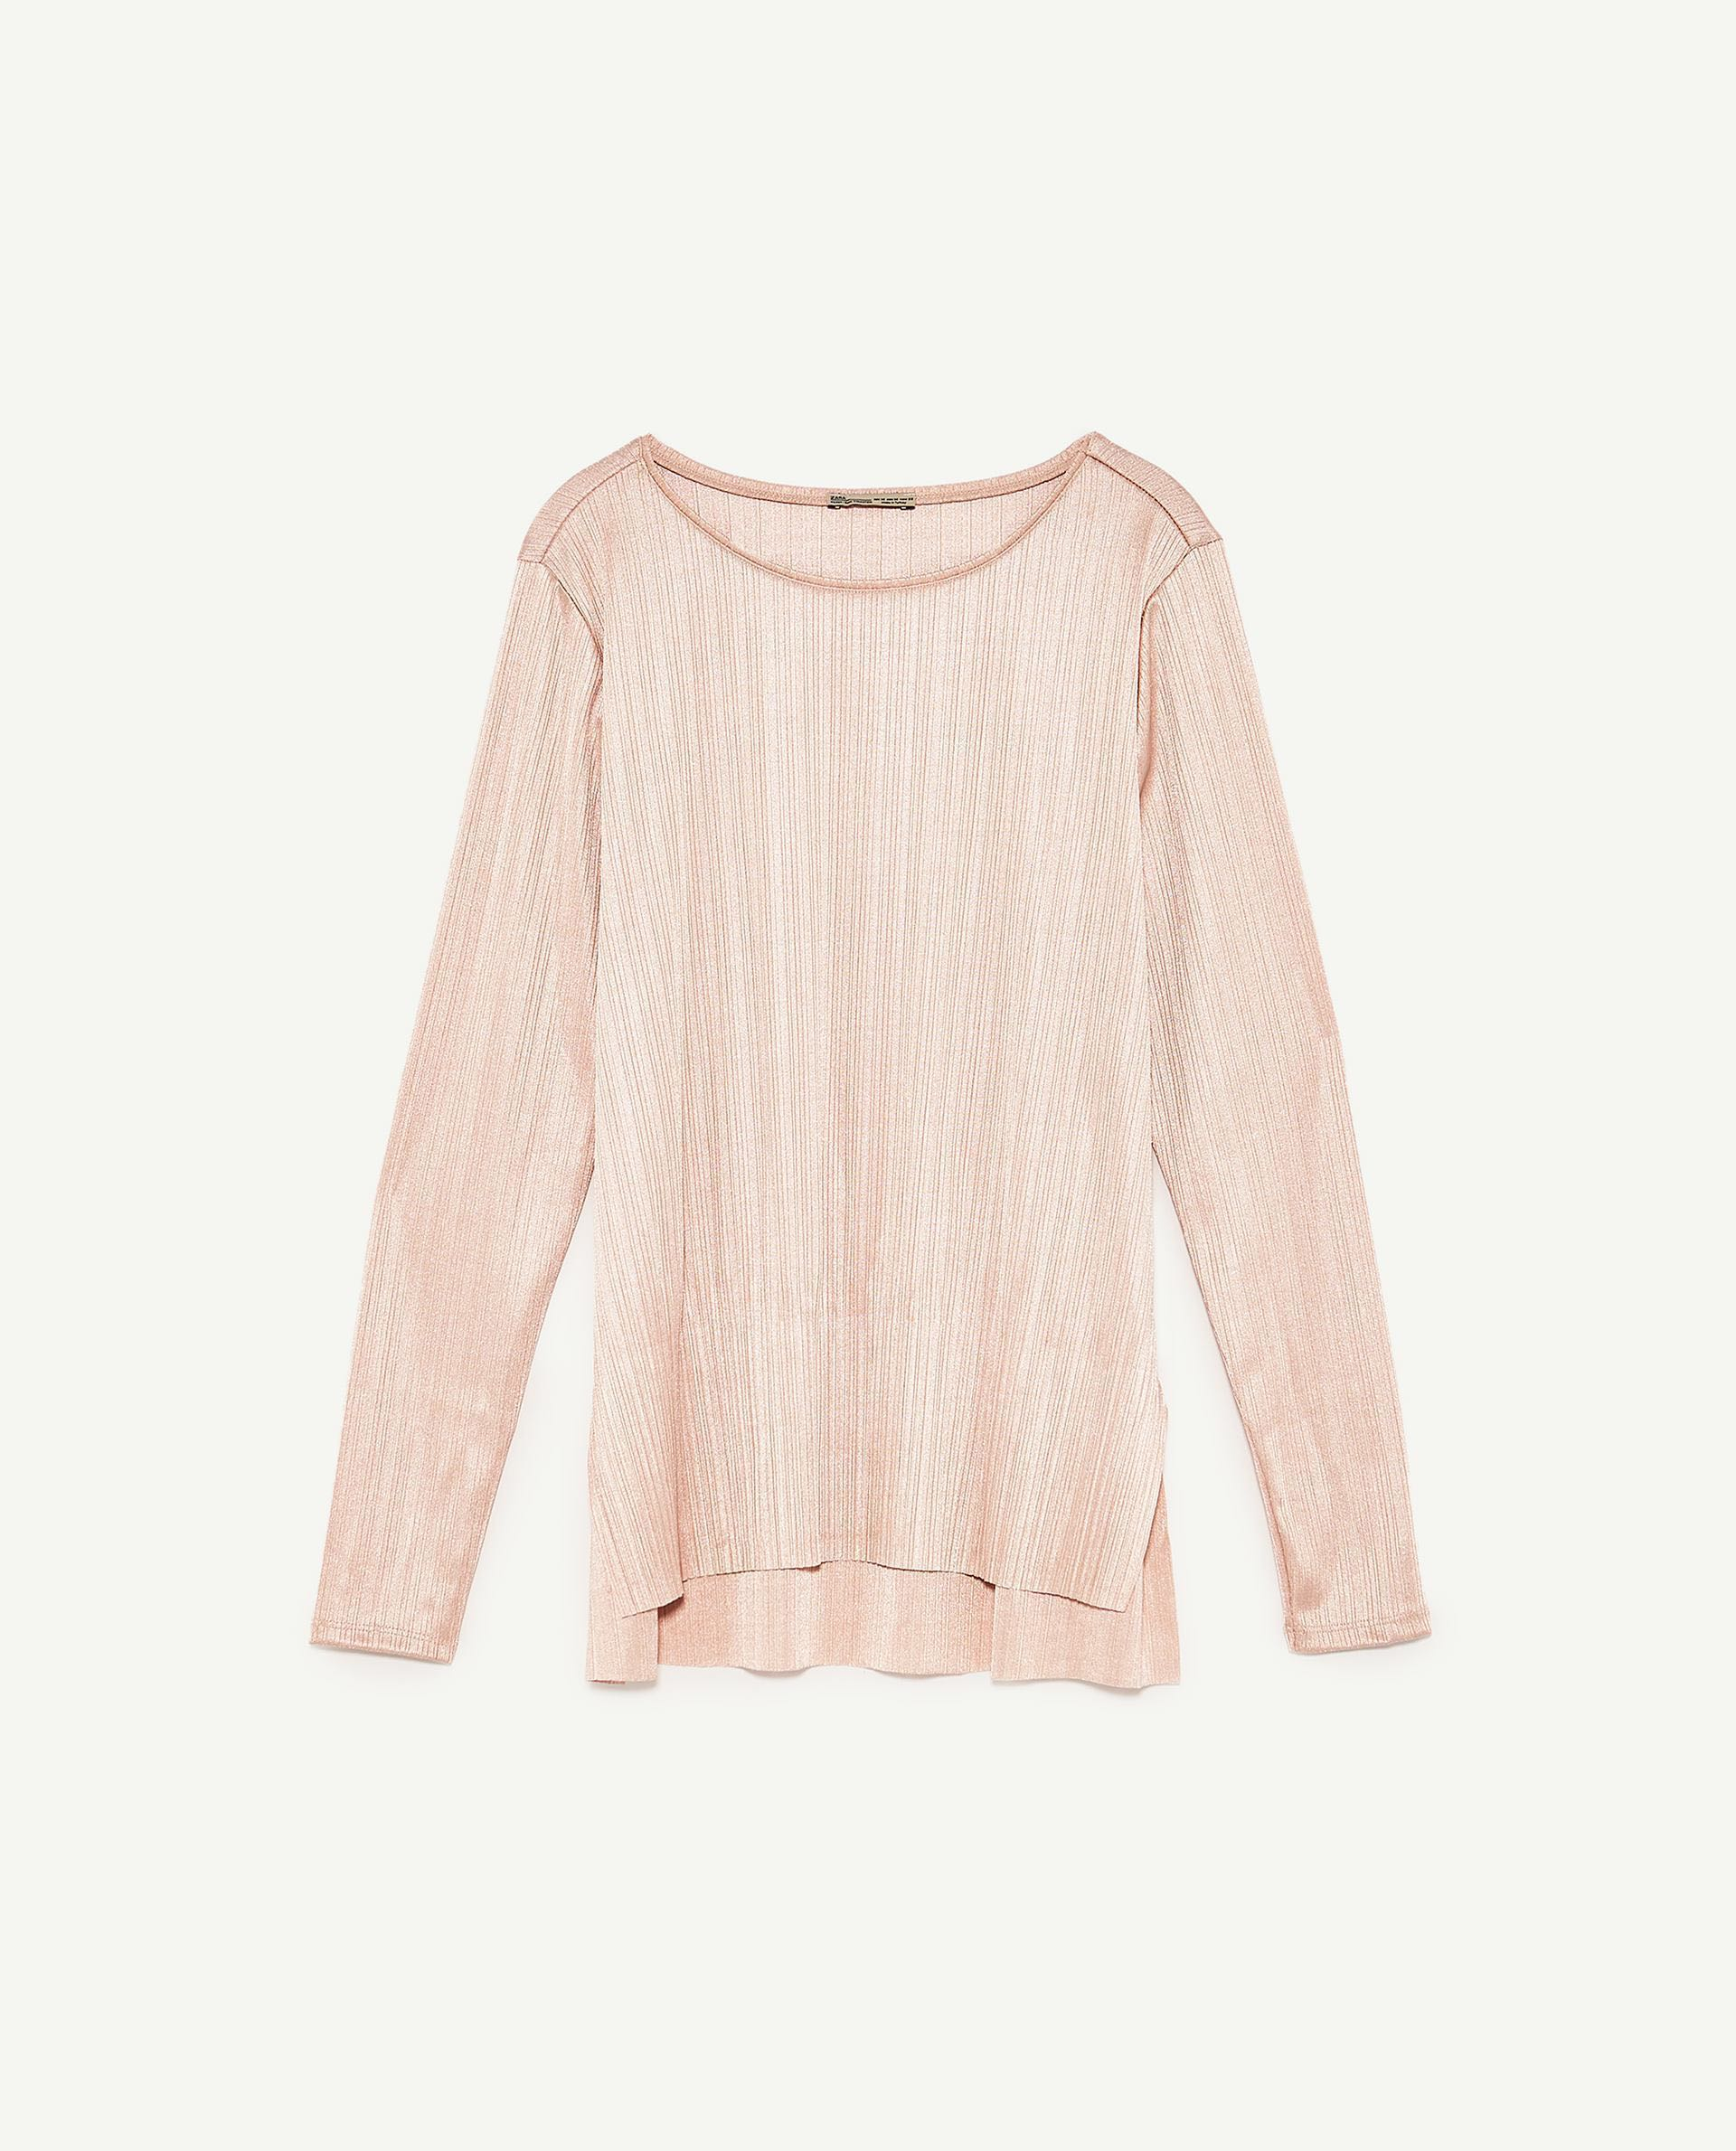 f072b744a2a3e3 ZARA Pastel Pink Long-sleeved Top, Women's Fashion, Clothes, Tops on ...